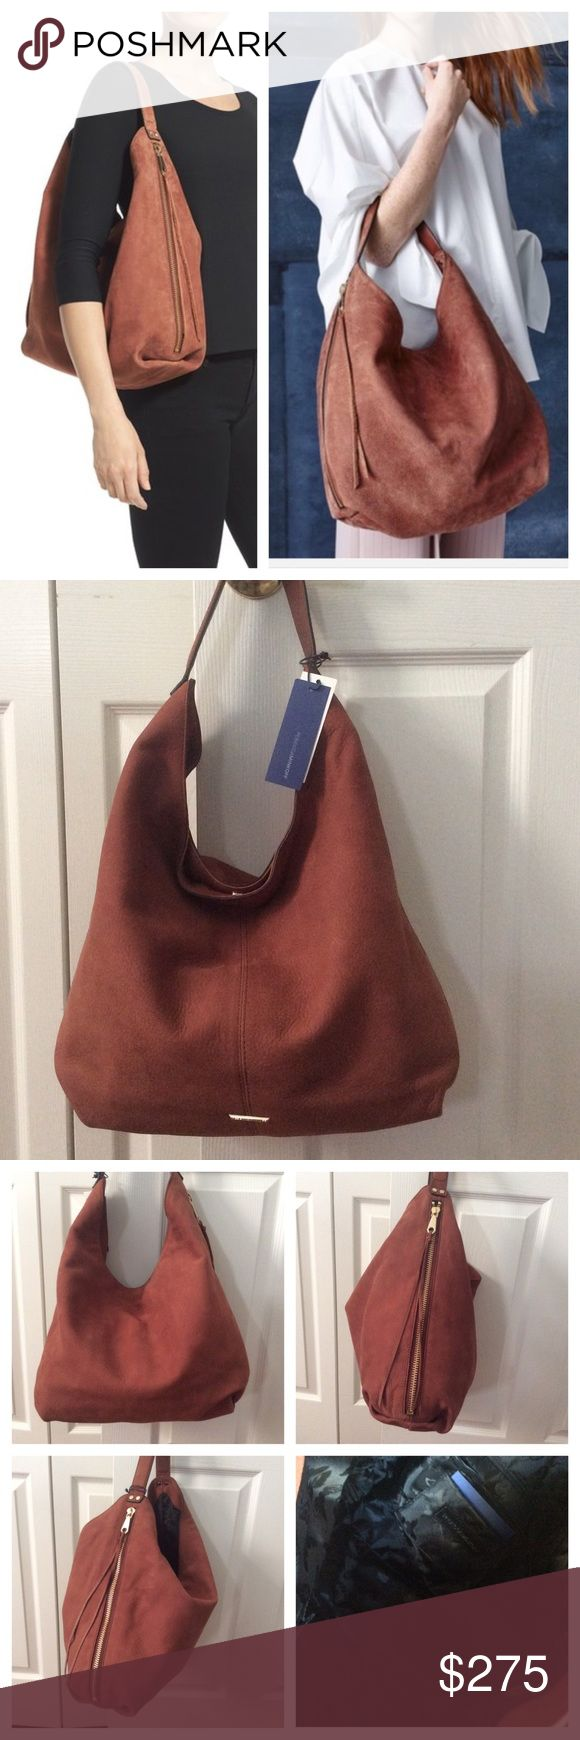 Rebecca Minkoff Suede Double Zipper Hobo Whiskey Price is firm on Poshmark. Brand new no flaws. Comes with extra tassels and dust bag. Rebecca Minkoff Bags Hobos